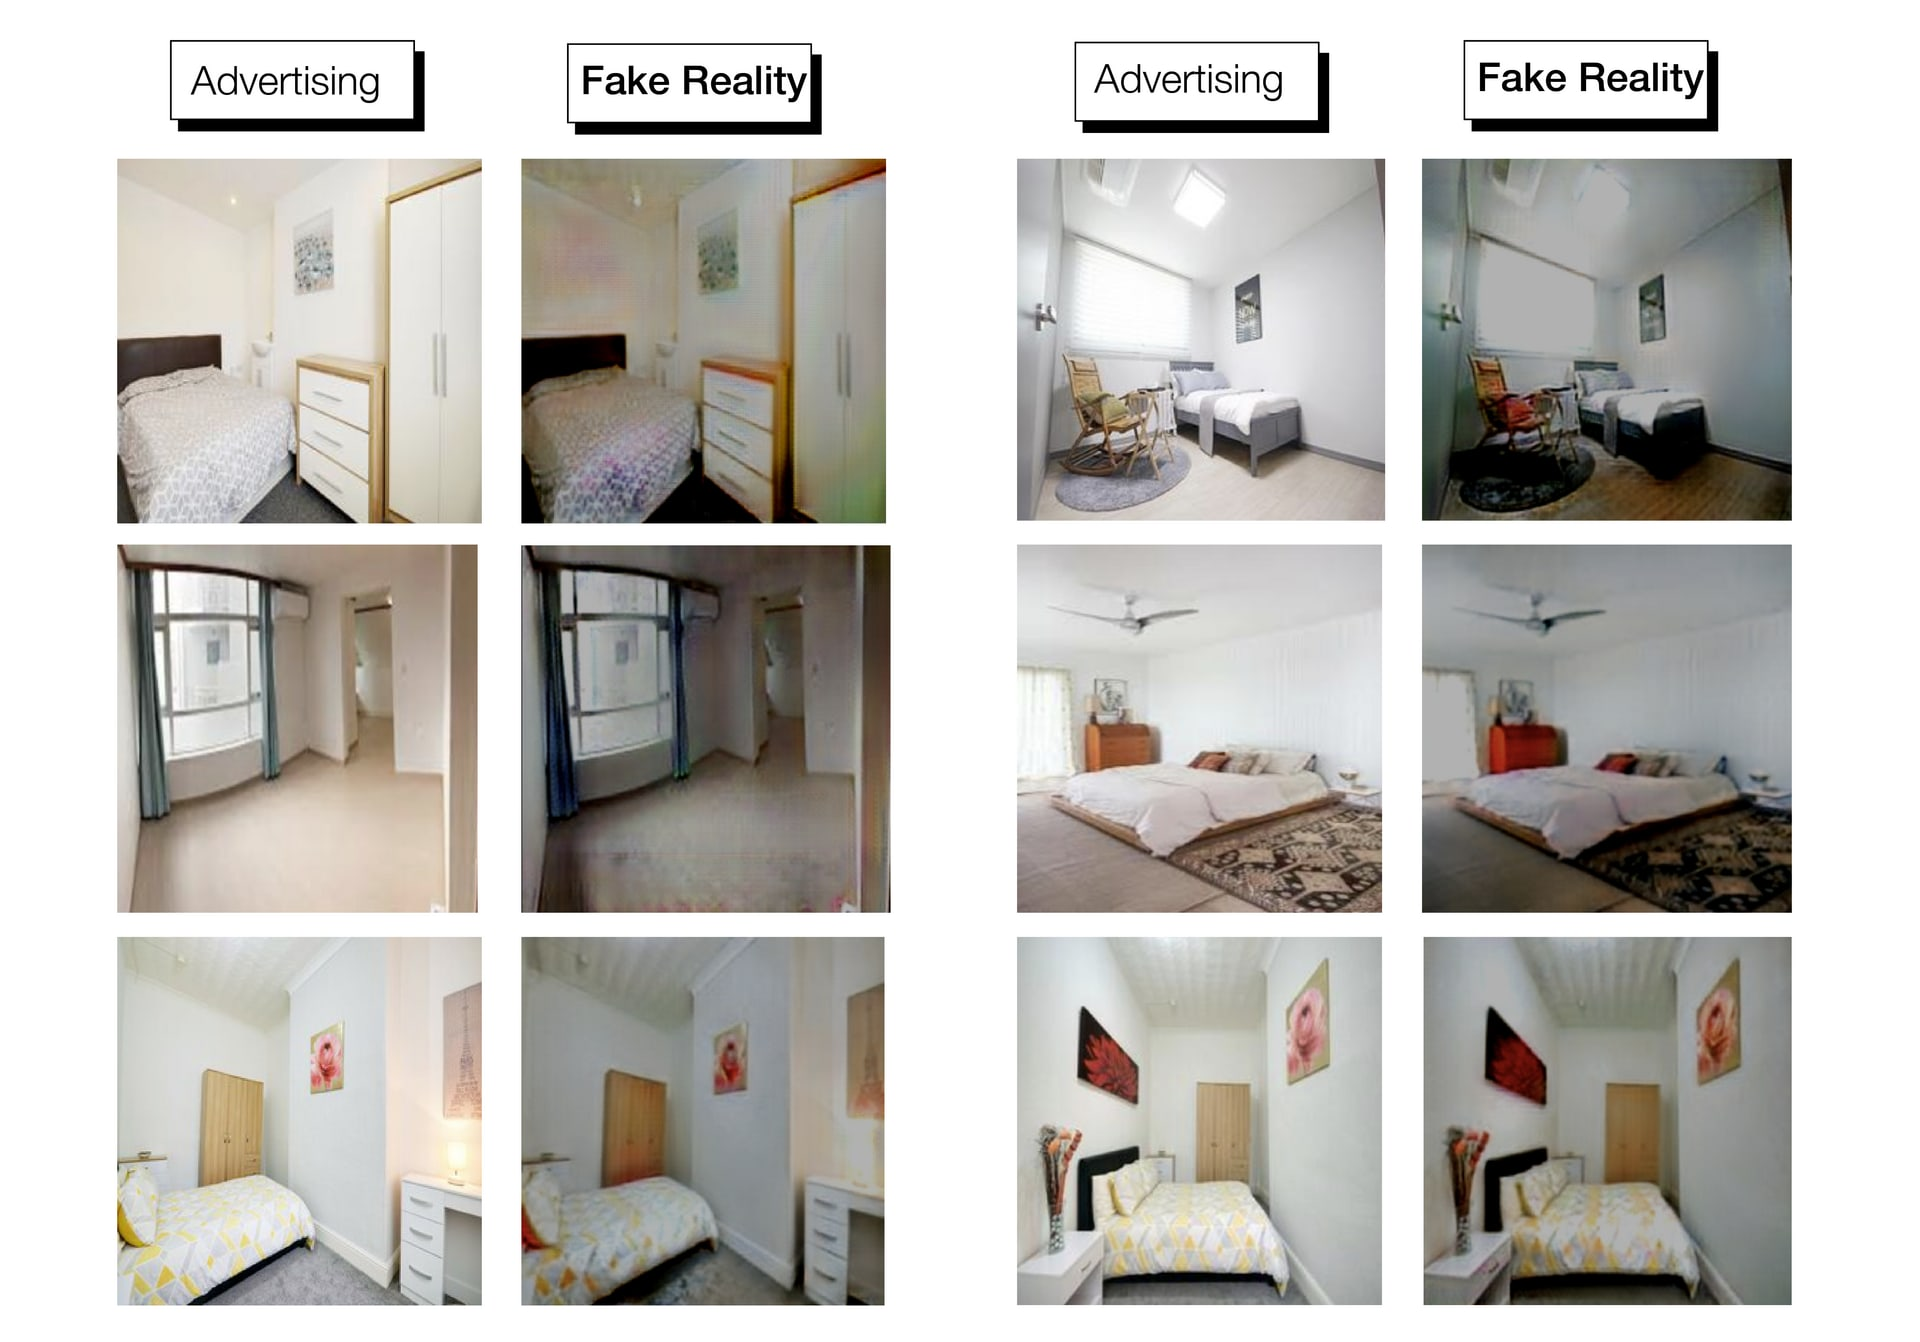 From advertising image to Fake Reality (Created by AI)